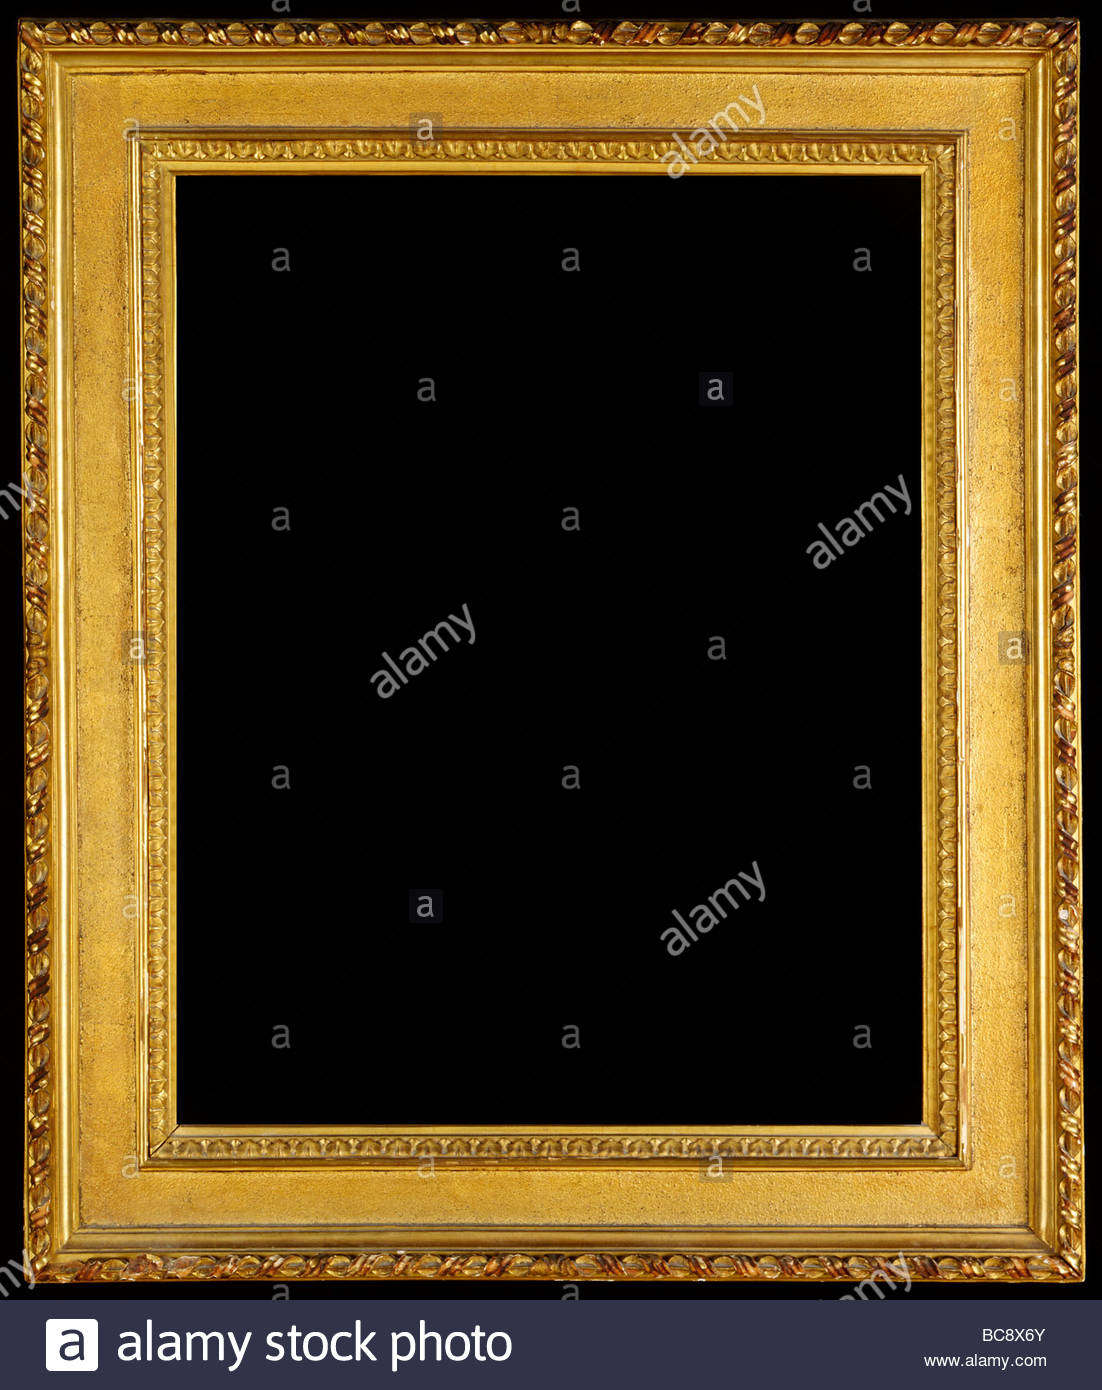 Gold leaf oil painting frame 100 to 200 years old dropped out on ...